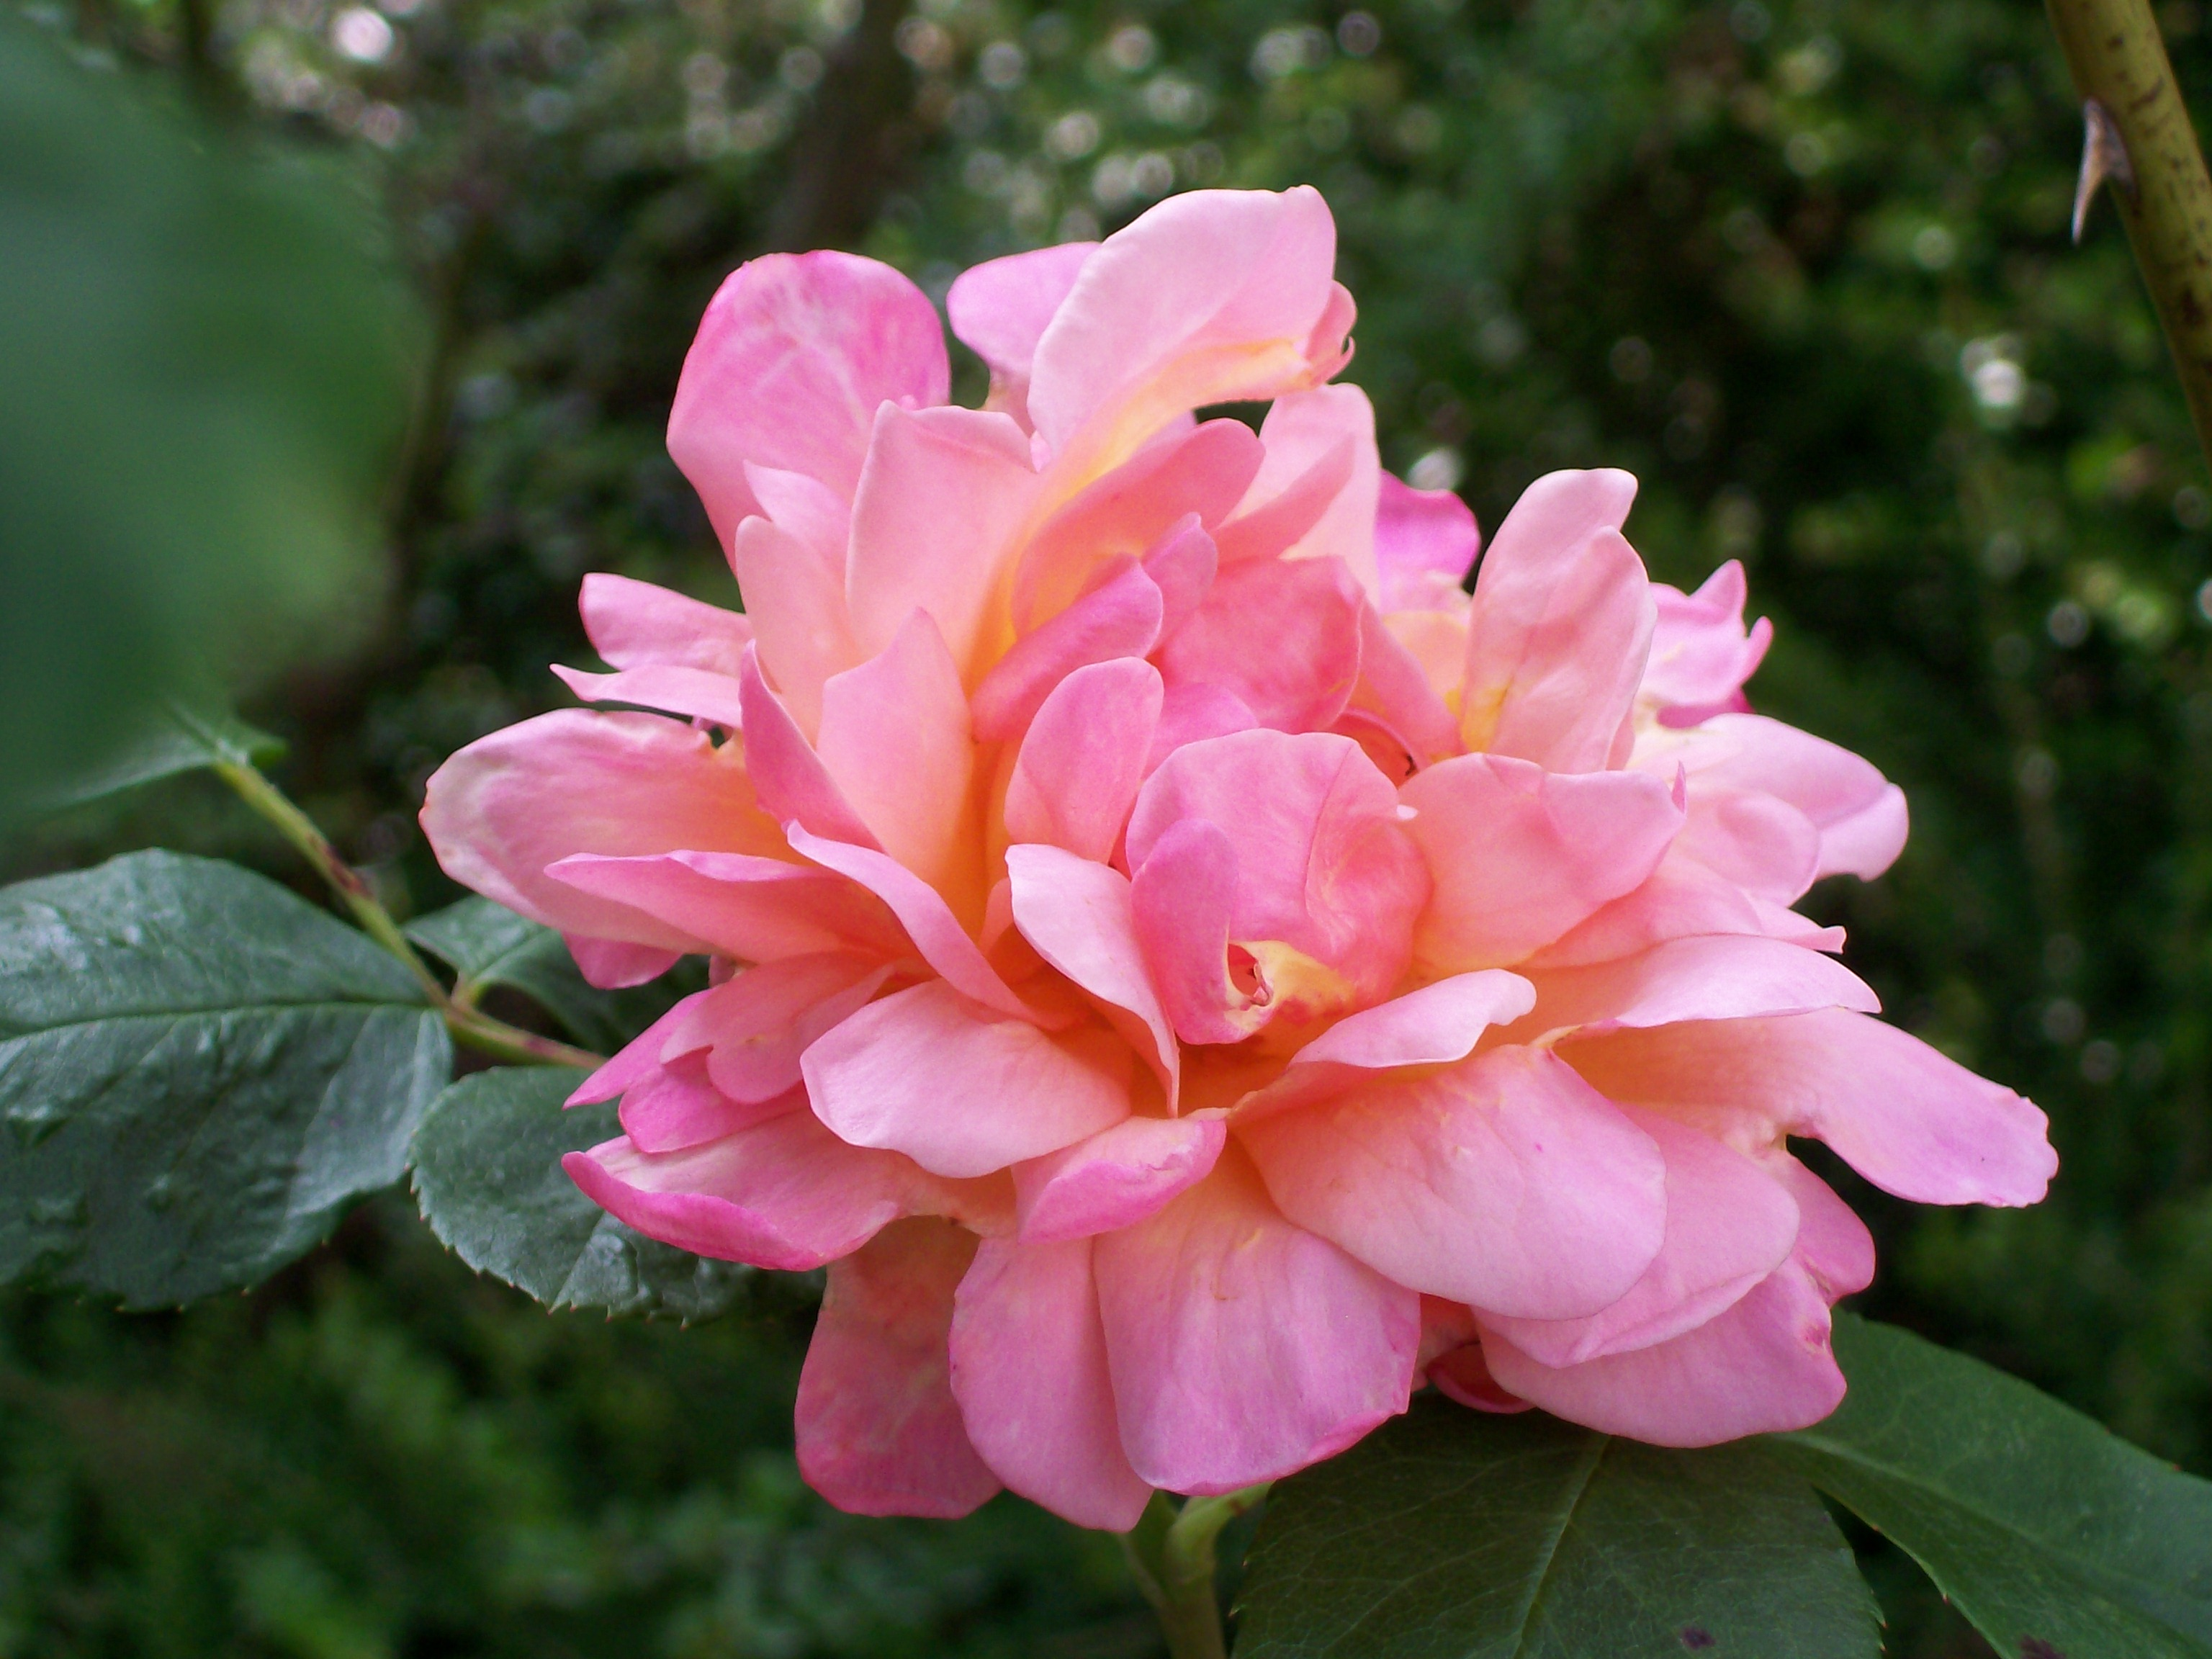 rose in my garden - lean in and breathe in - you may just smell it!